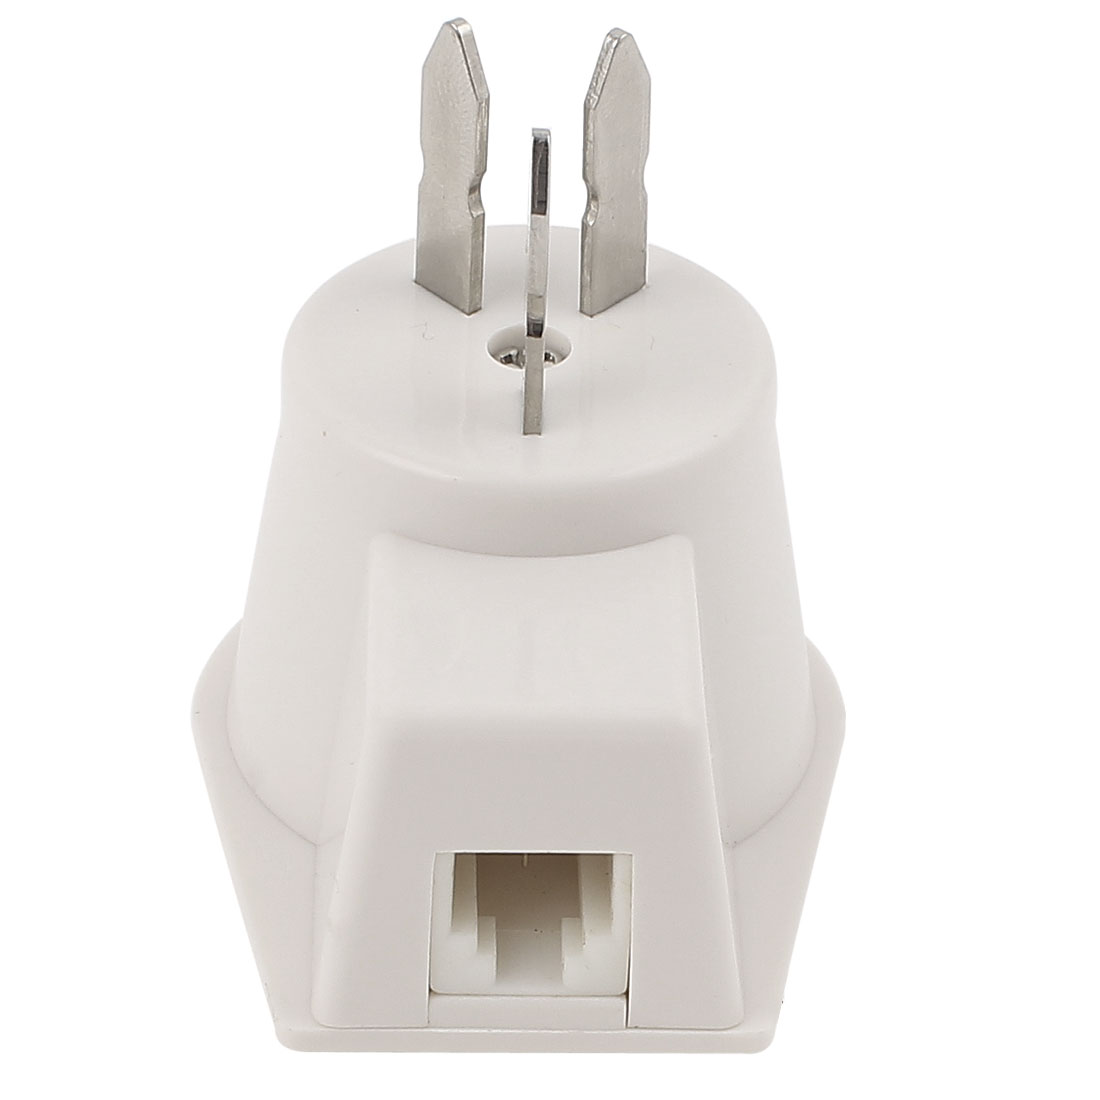 USA Modem Plug RJ11 6P2C to Finnish Phone Jack Outlet Adapter